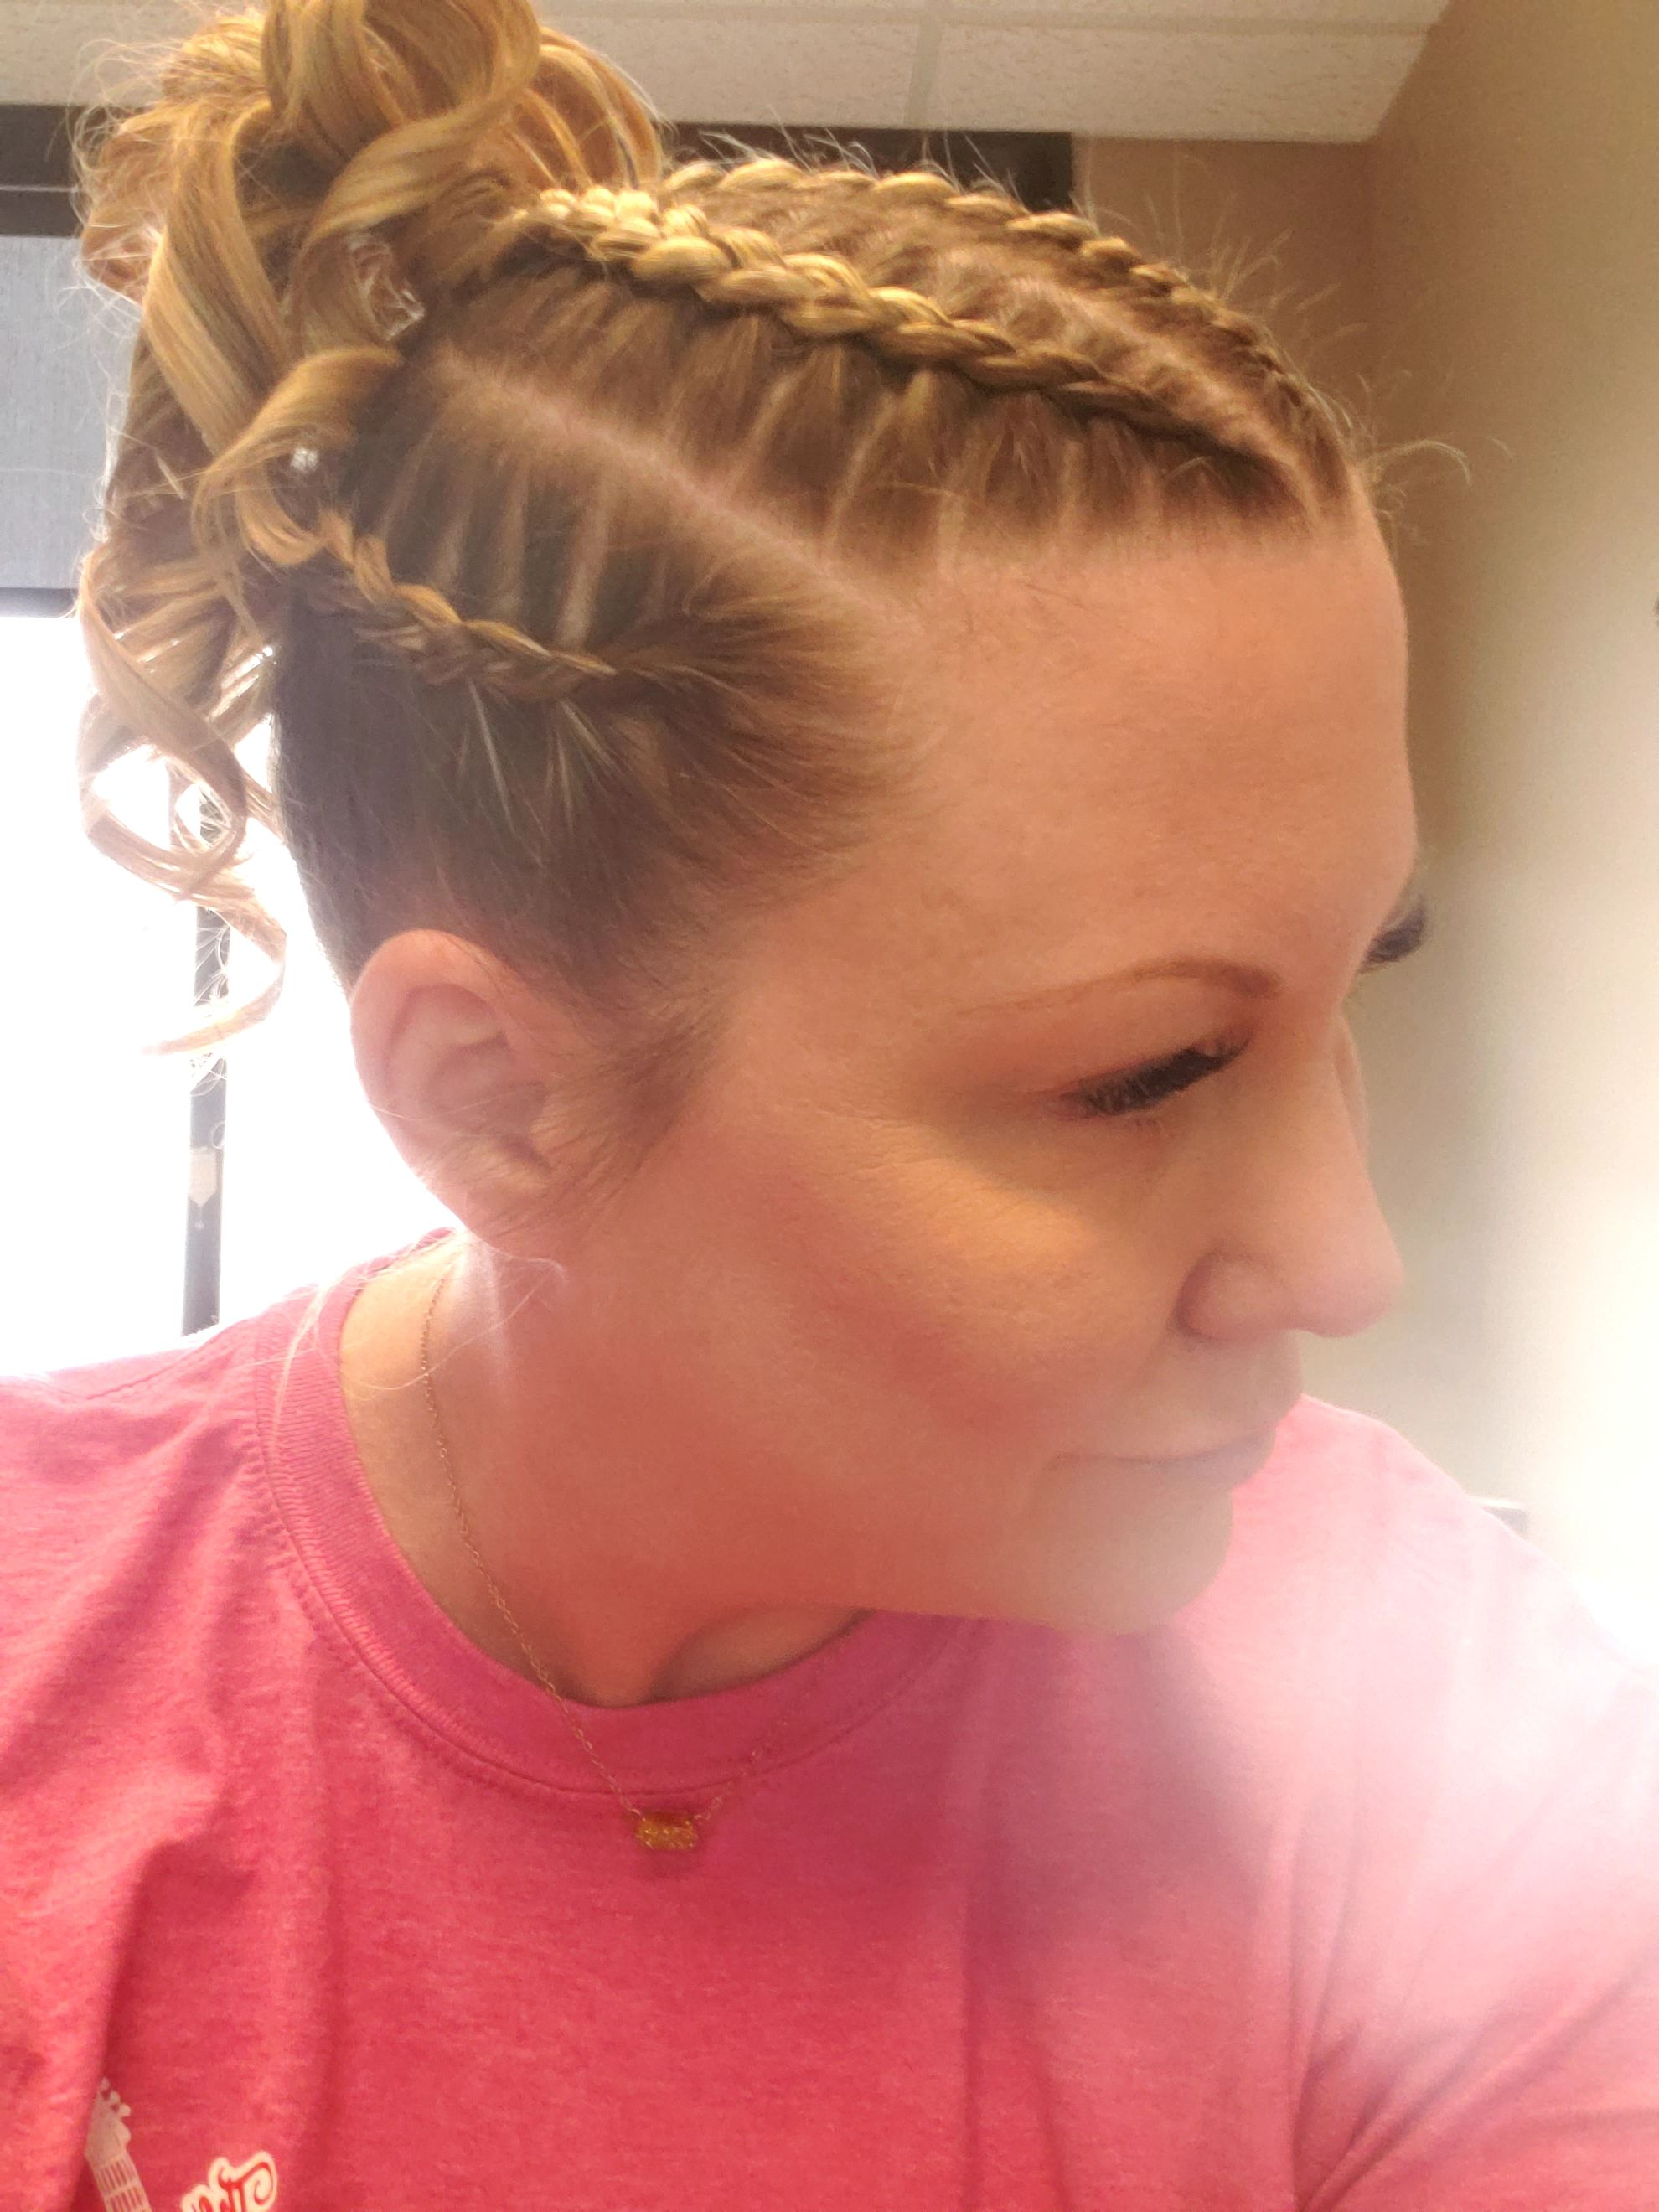 Boxer Braids Thin Hair Curly Ponytail In 2020 Braids For Thin Hair Hairstyles For Thin Hair Curly Hair Styles